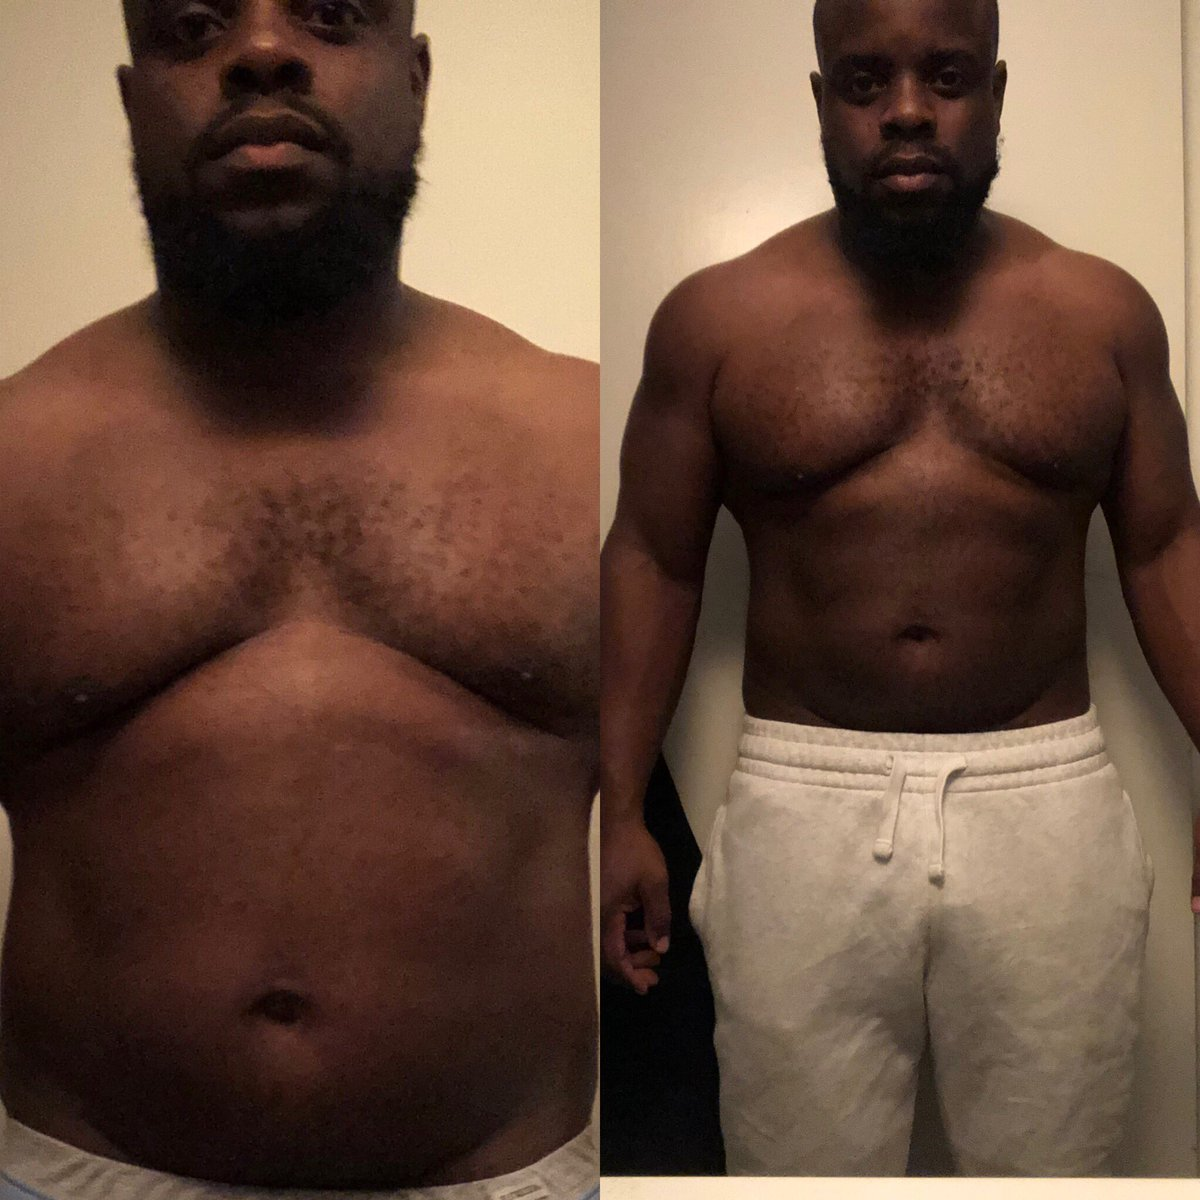 Been working hard on my fitness journey...been getting up early(5:45am) to meet with my trainer on days where I got little sleep and def didn't want to go...seeing some progress has def gave me more motivation and makes me want to push harder!!! #fitnessjourney #progress<br>http://pic.twitter.com/5Yf2EORxY4